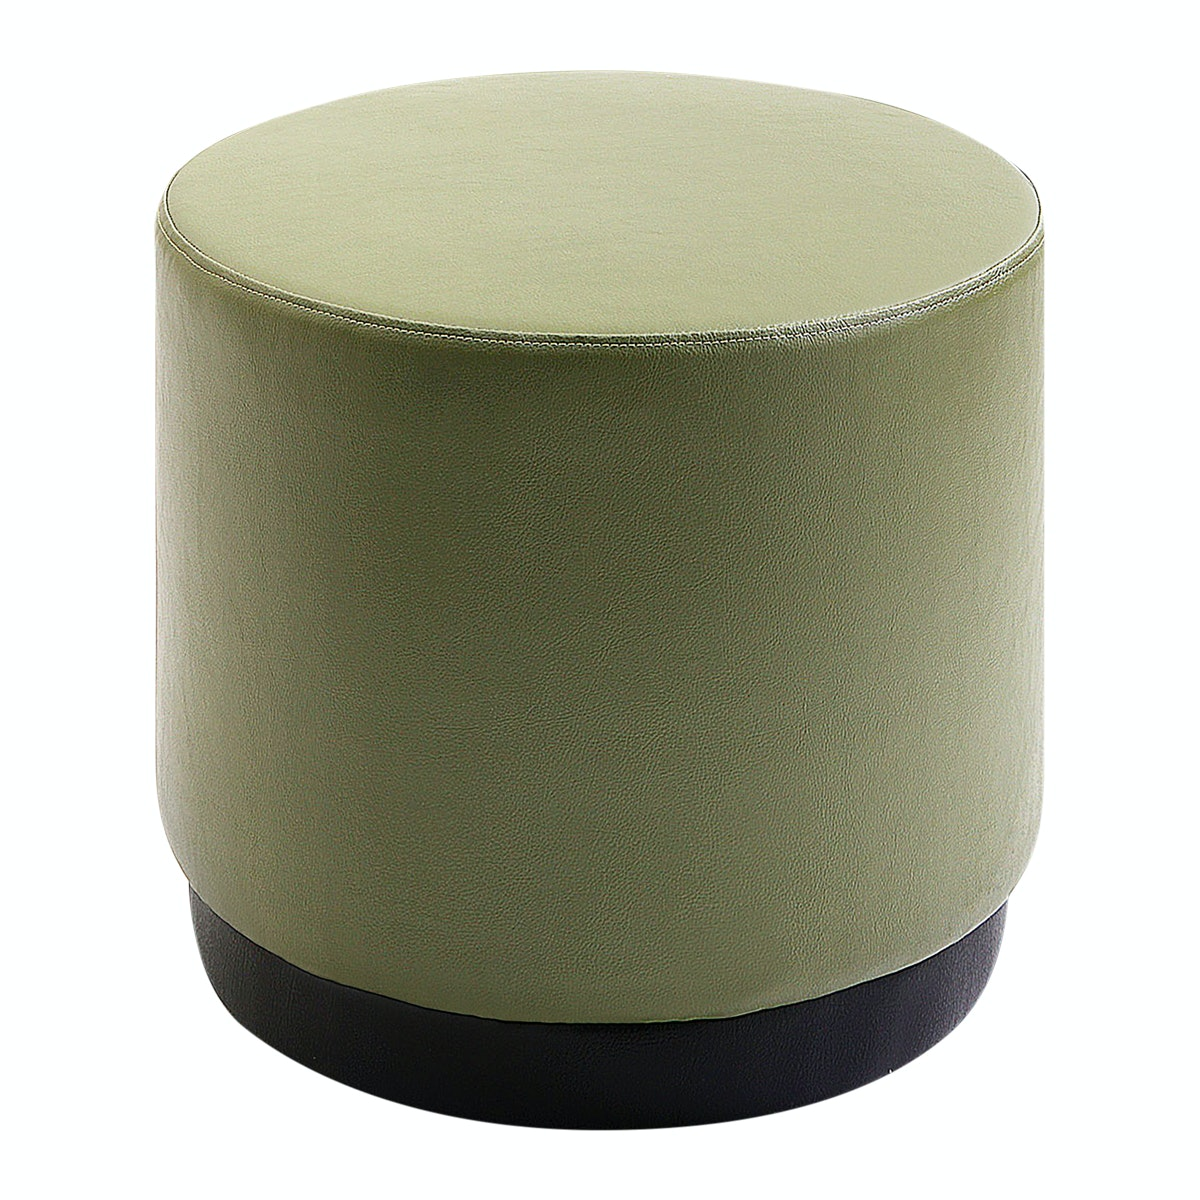 Hago Furniture Ottoman Stool Kualitas Premium Green Tea